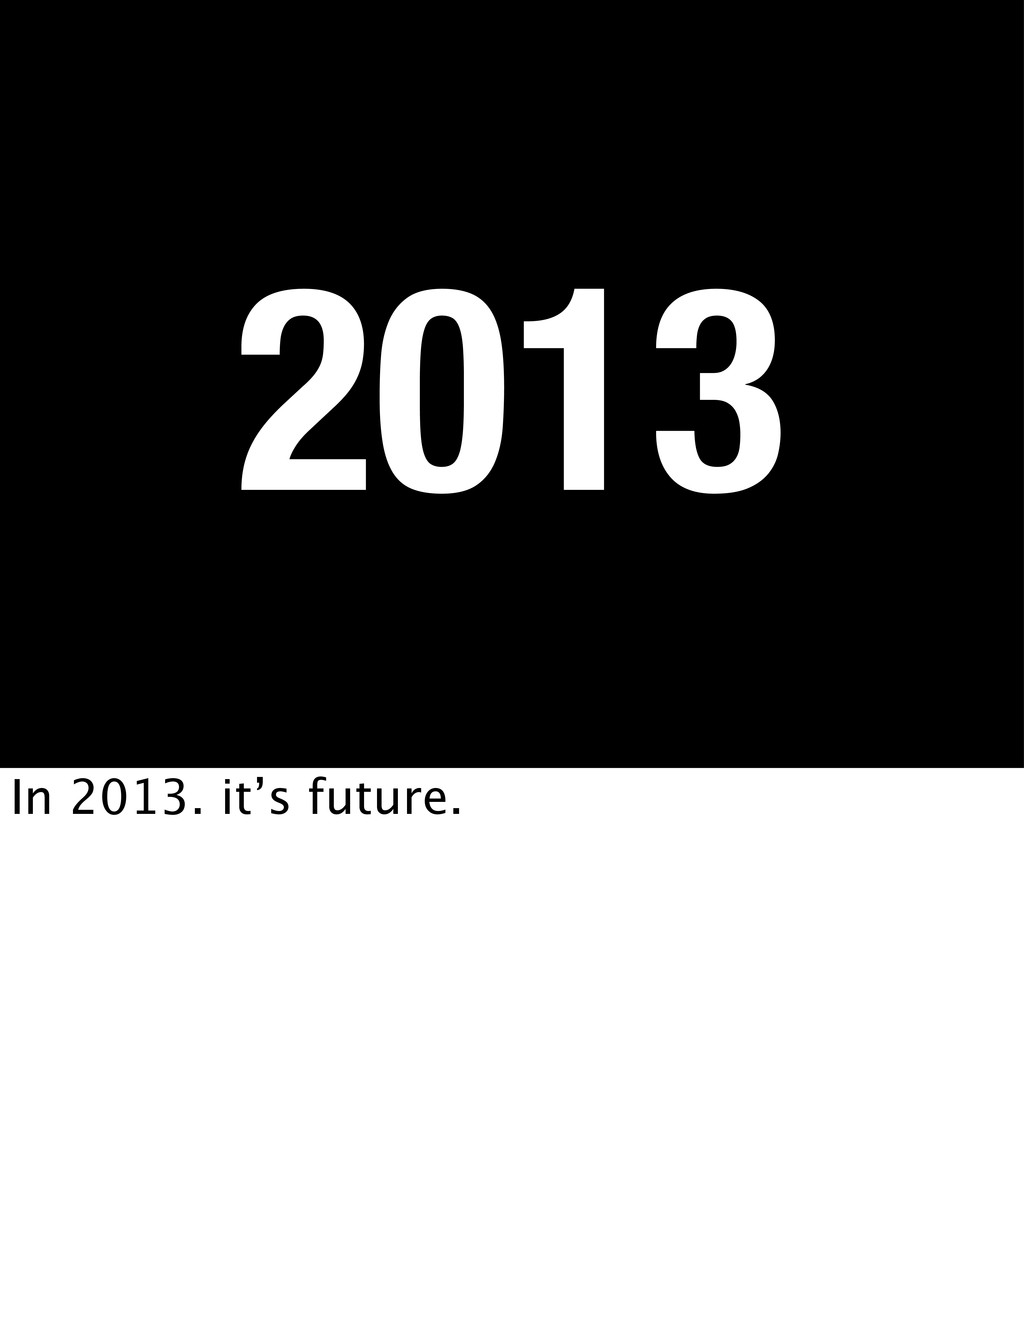 2013 In 2013. it's future.